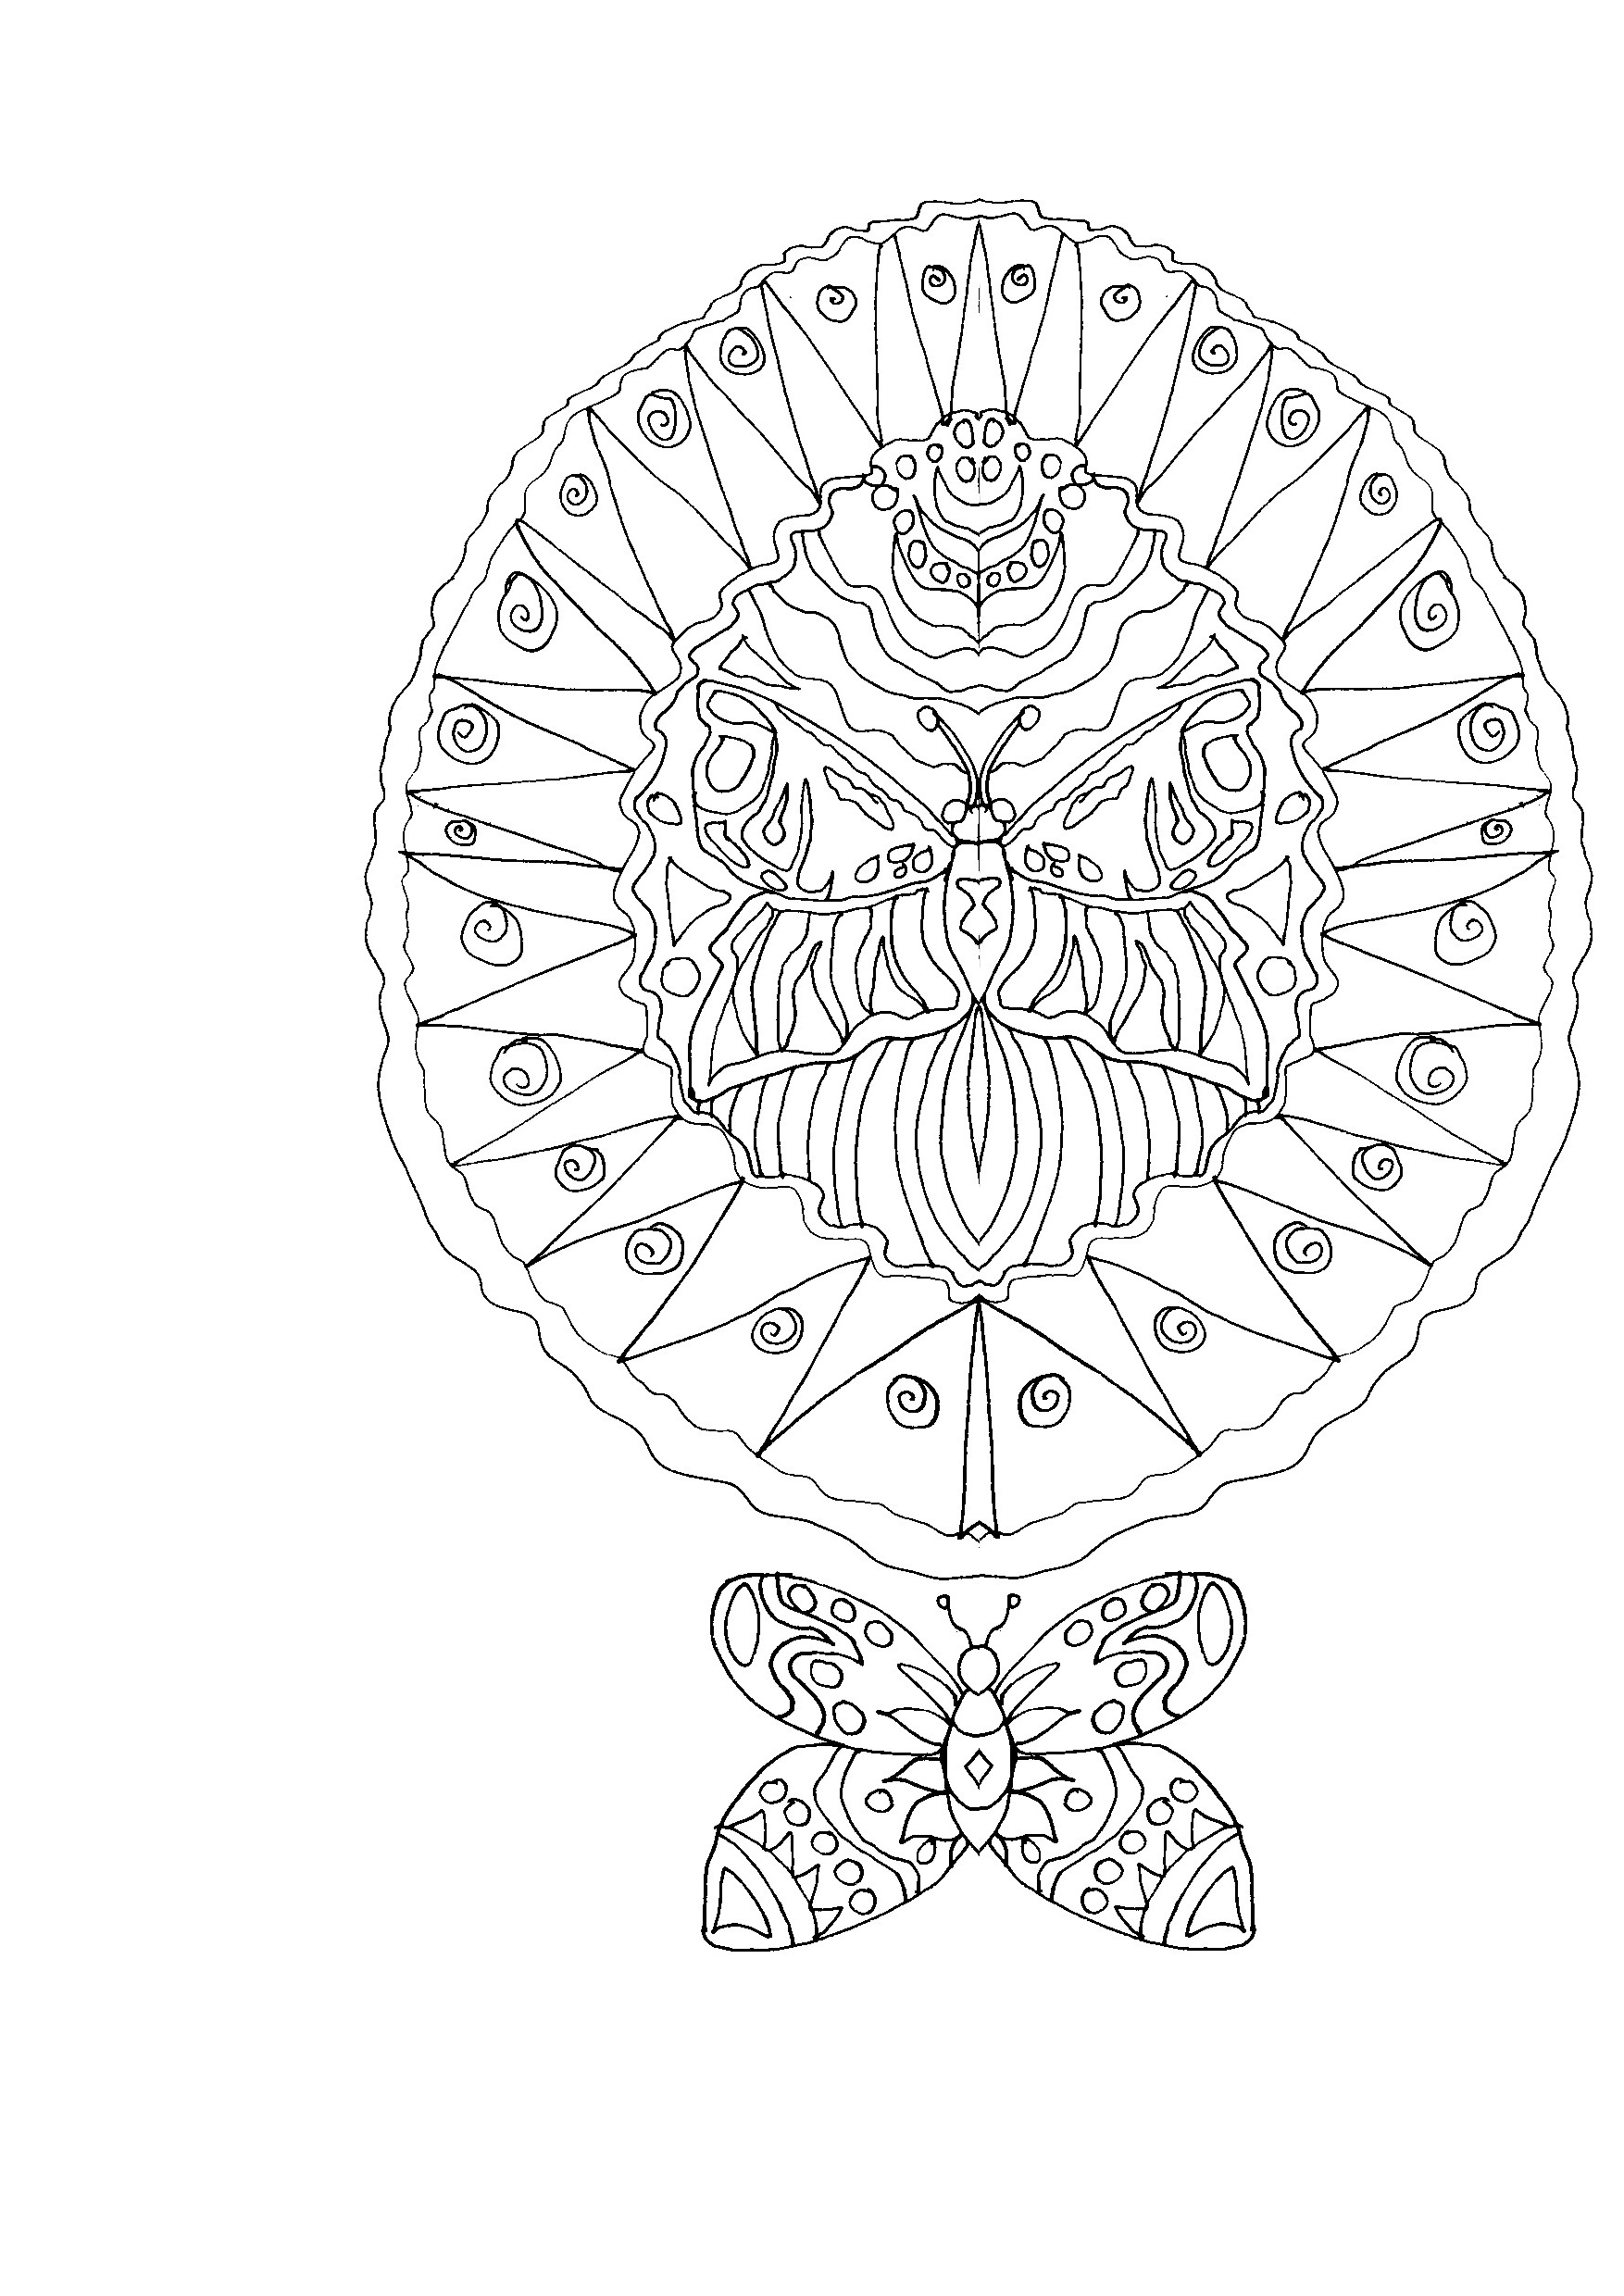 Free Coloring Book Page – 0239